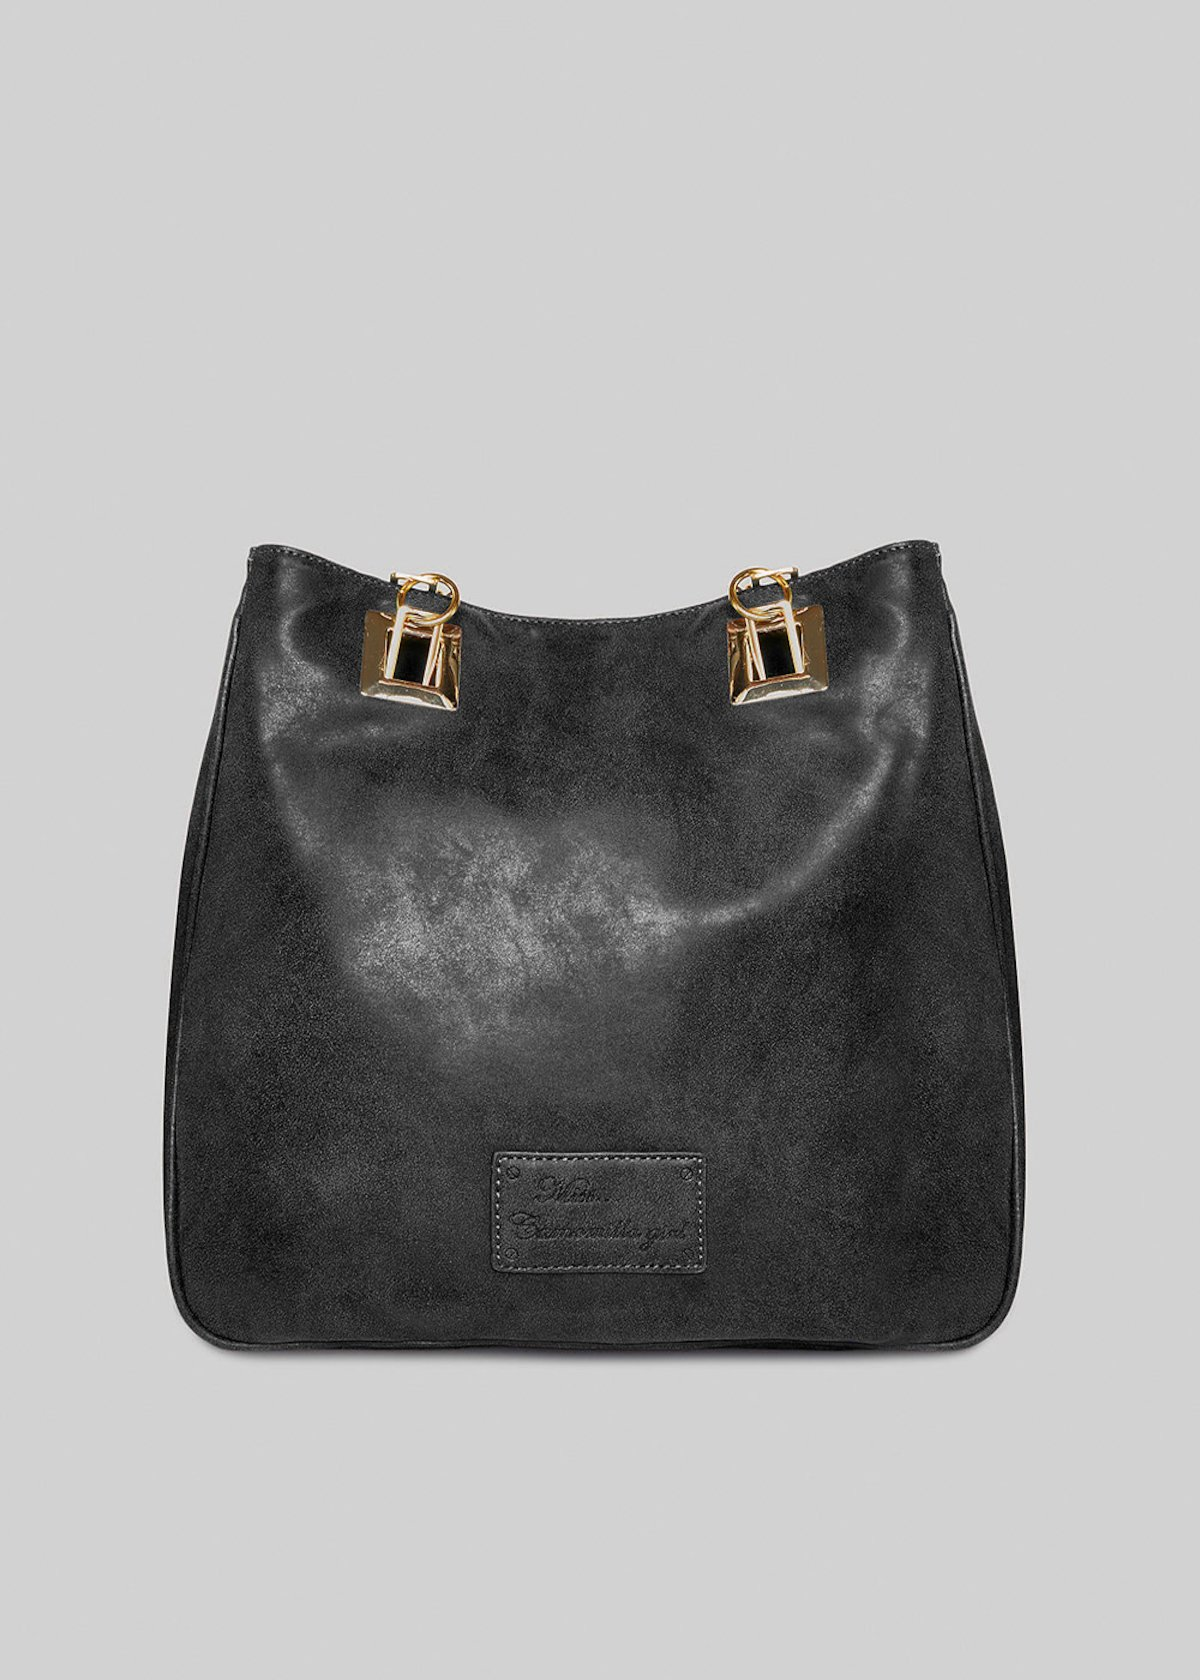 Shopping bag Mmissbruss in ecopelle con occhielli  gold square